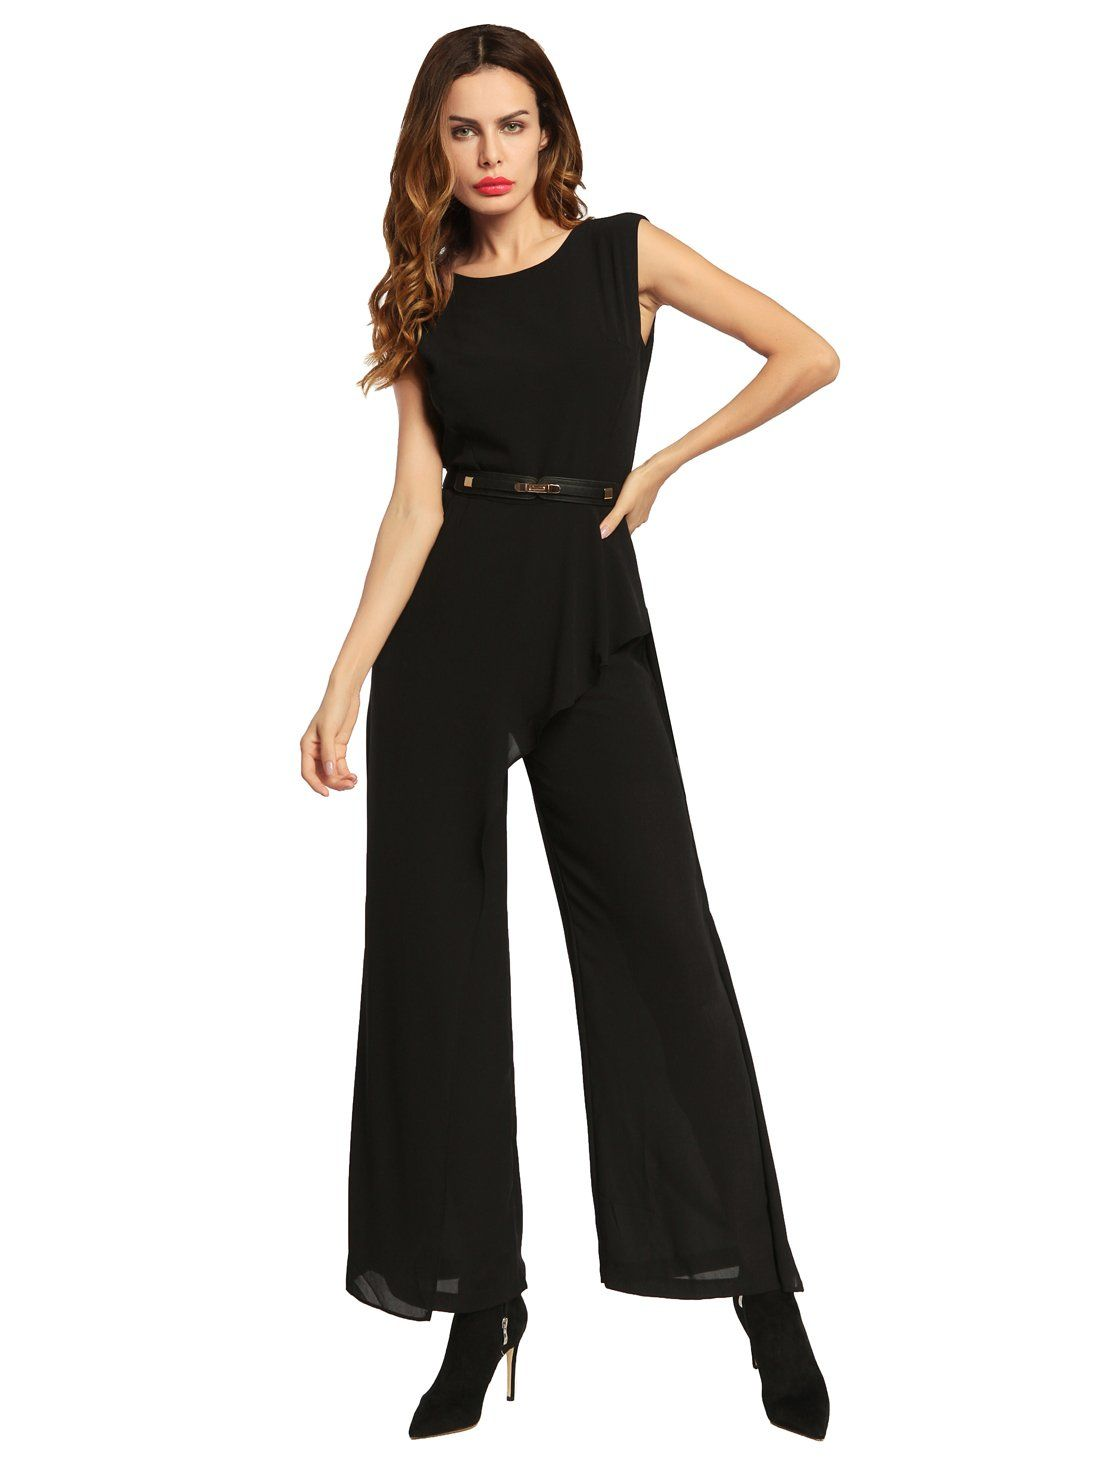 027d84e858785 OEUVRE Womens Modern Stylish Black Sleeveless Round Neck Bodycon Jumpsuit  with belt Black M     More info could be found at the image url.